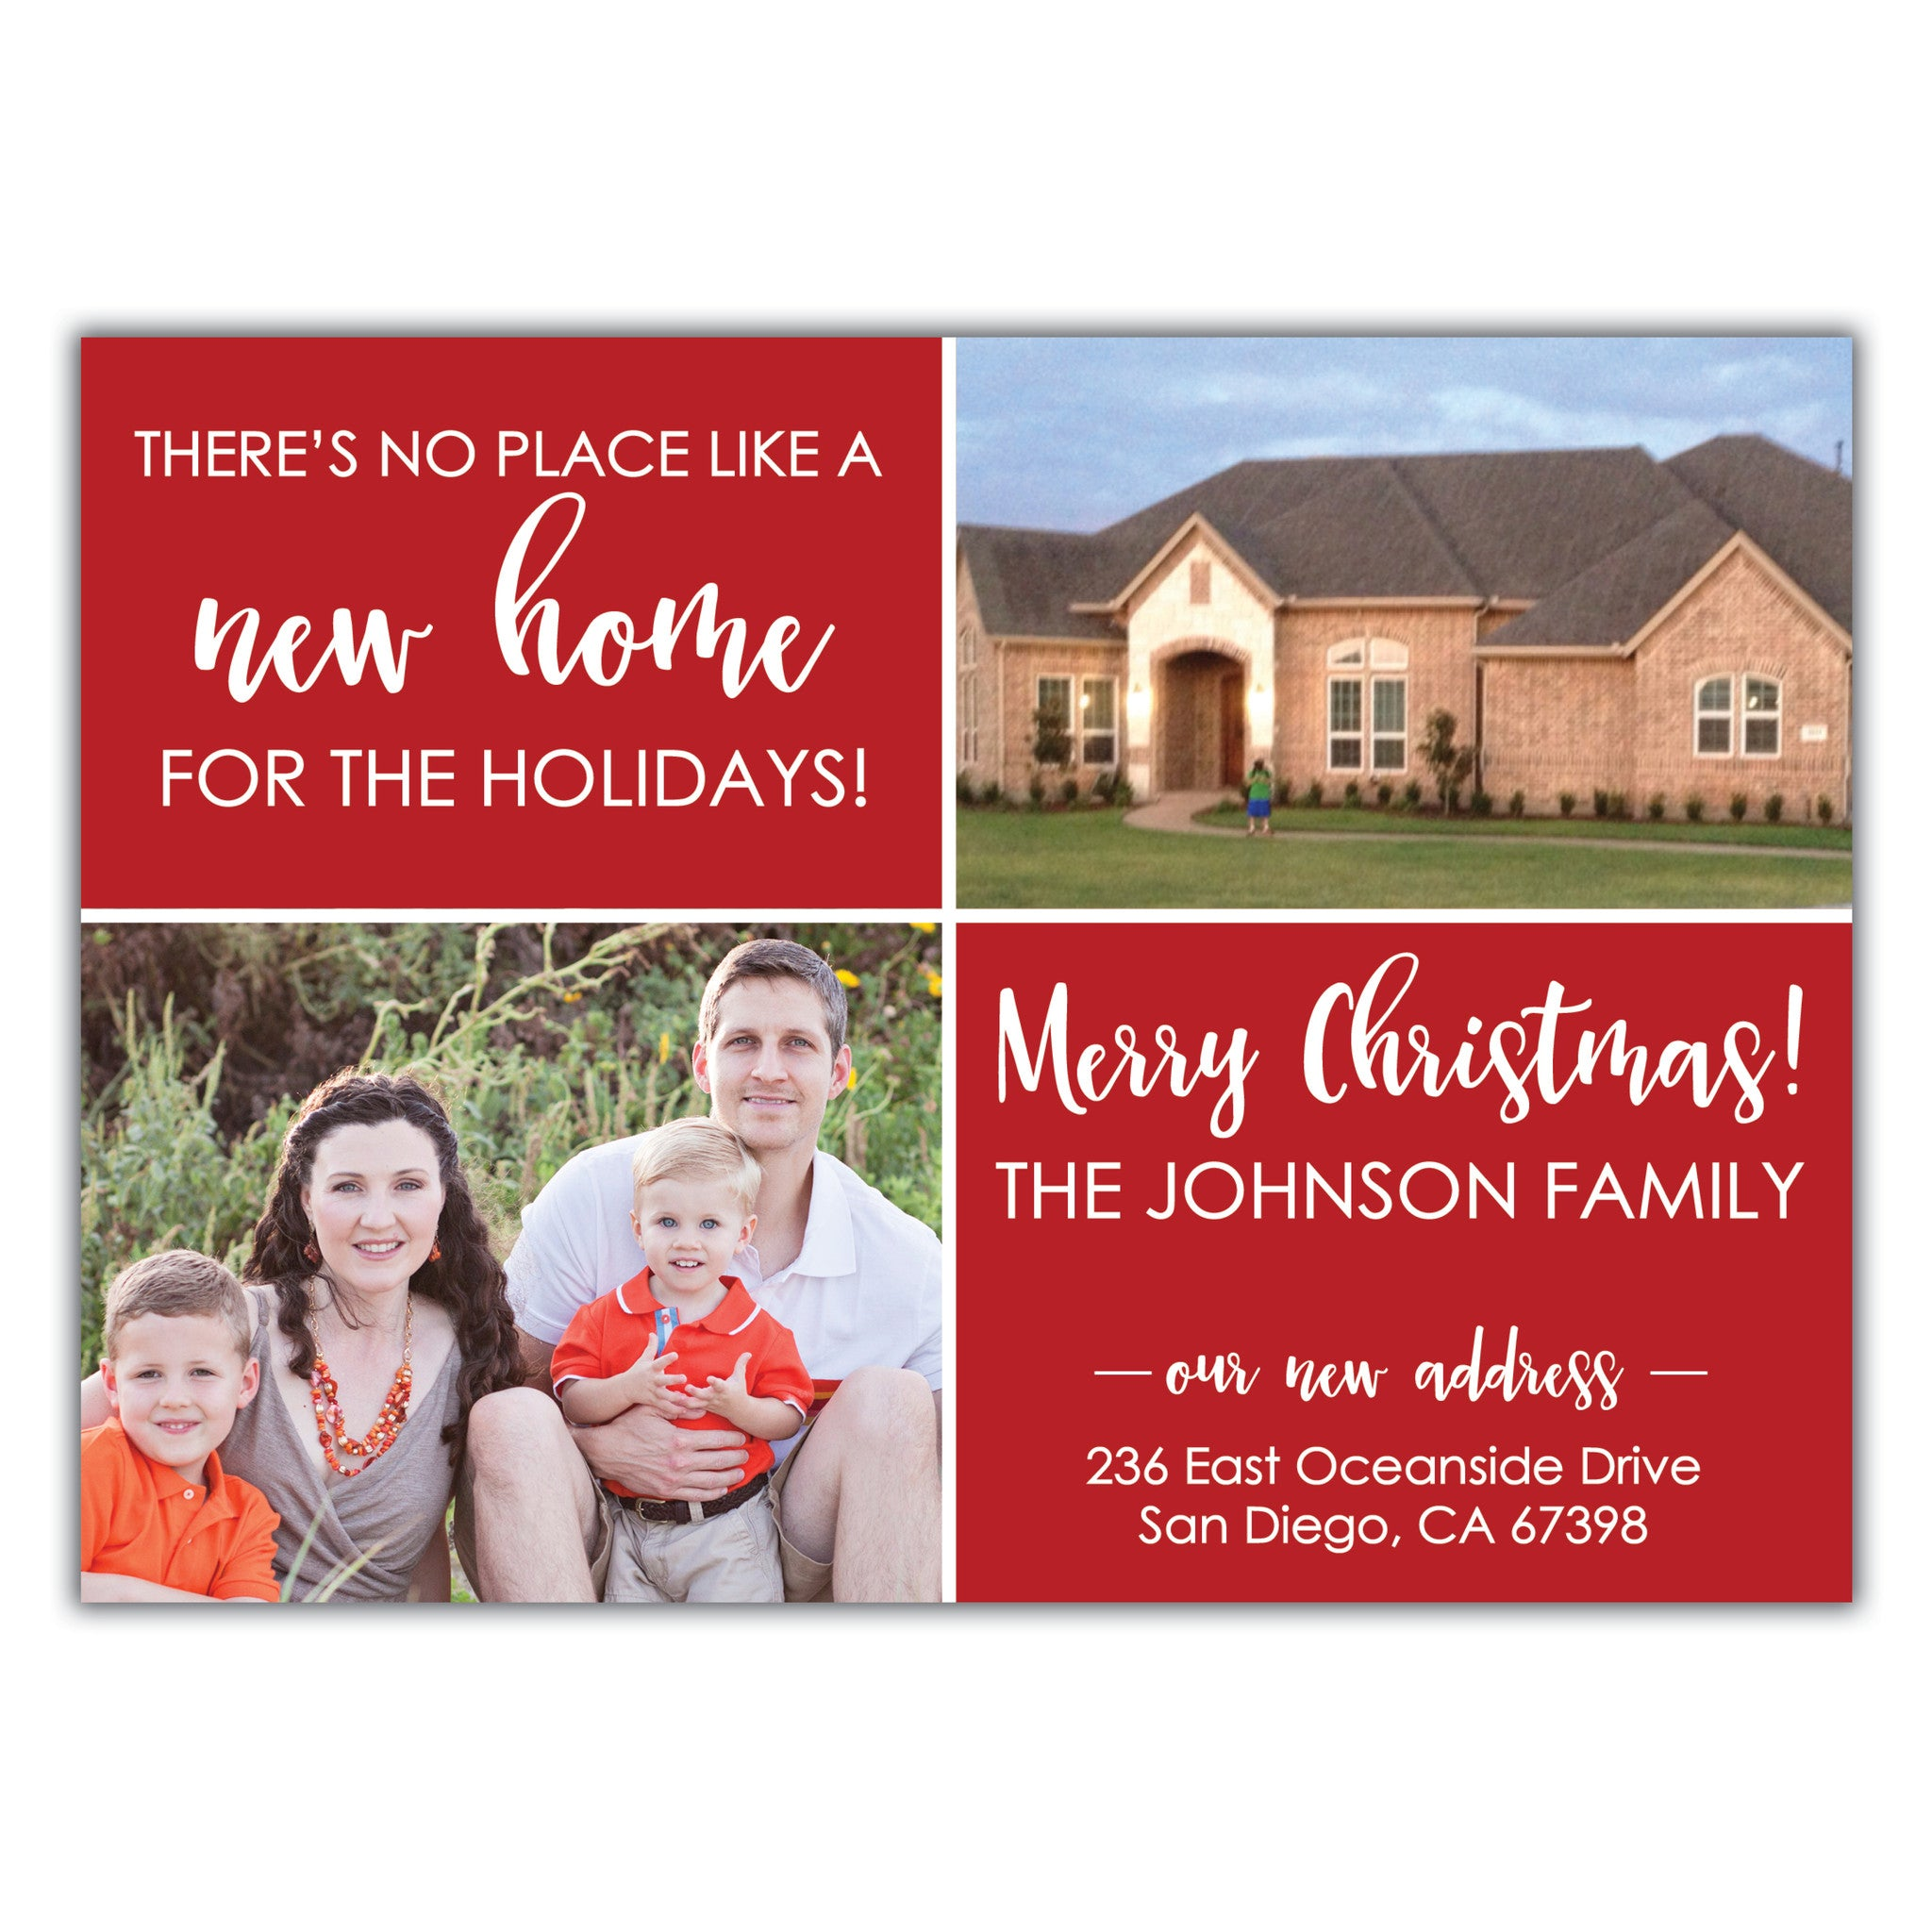 Christmas Photo Cards Page 2 - Brown Paper Studios